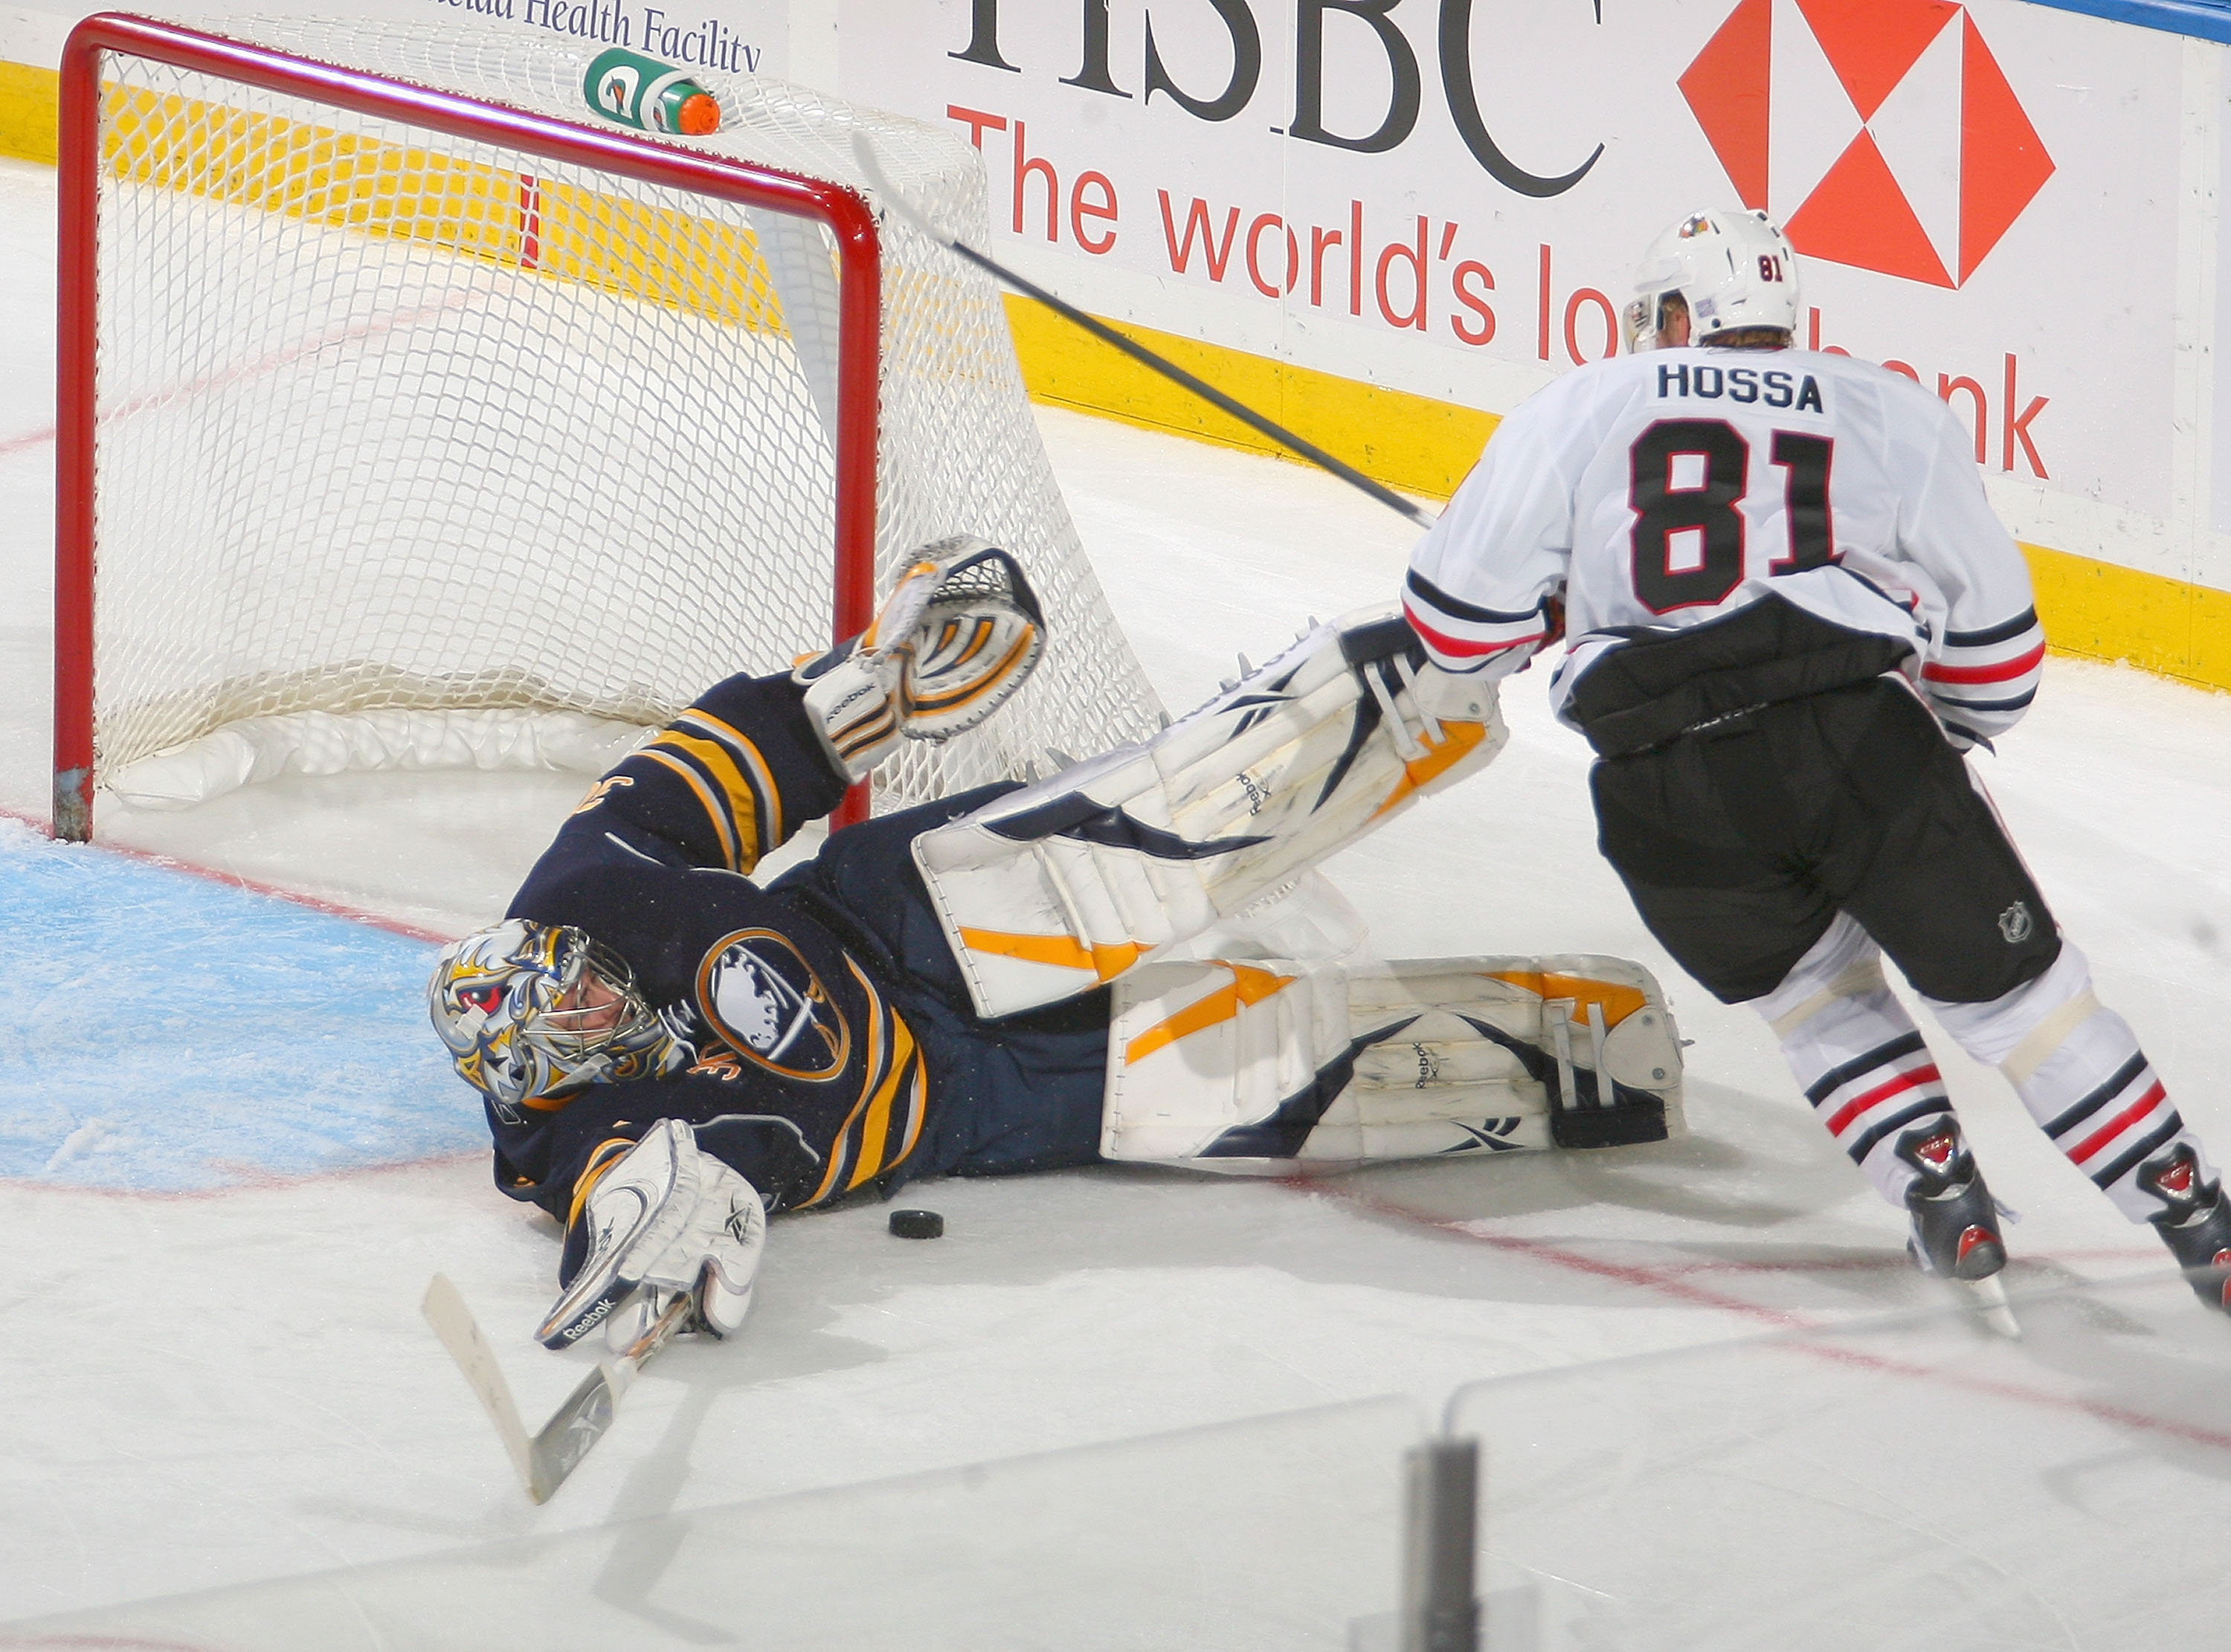 BUFFALO, NY - OCTOBER 11: Ryan Miller #30 of the Buffalo Sabres makes a sliding save on Marian Hossa #81 of the Chicago Blackhawks at HSBC Arena on October 11, 2010 in Buffalo, New York. Chicago won 4-3.  (Photo by Rick Stewart/Getty Images)